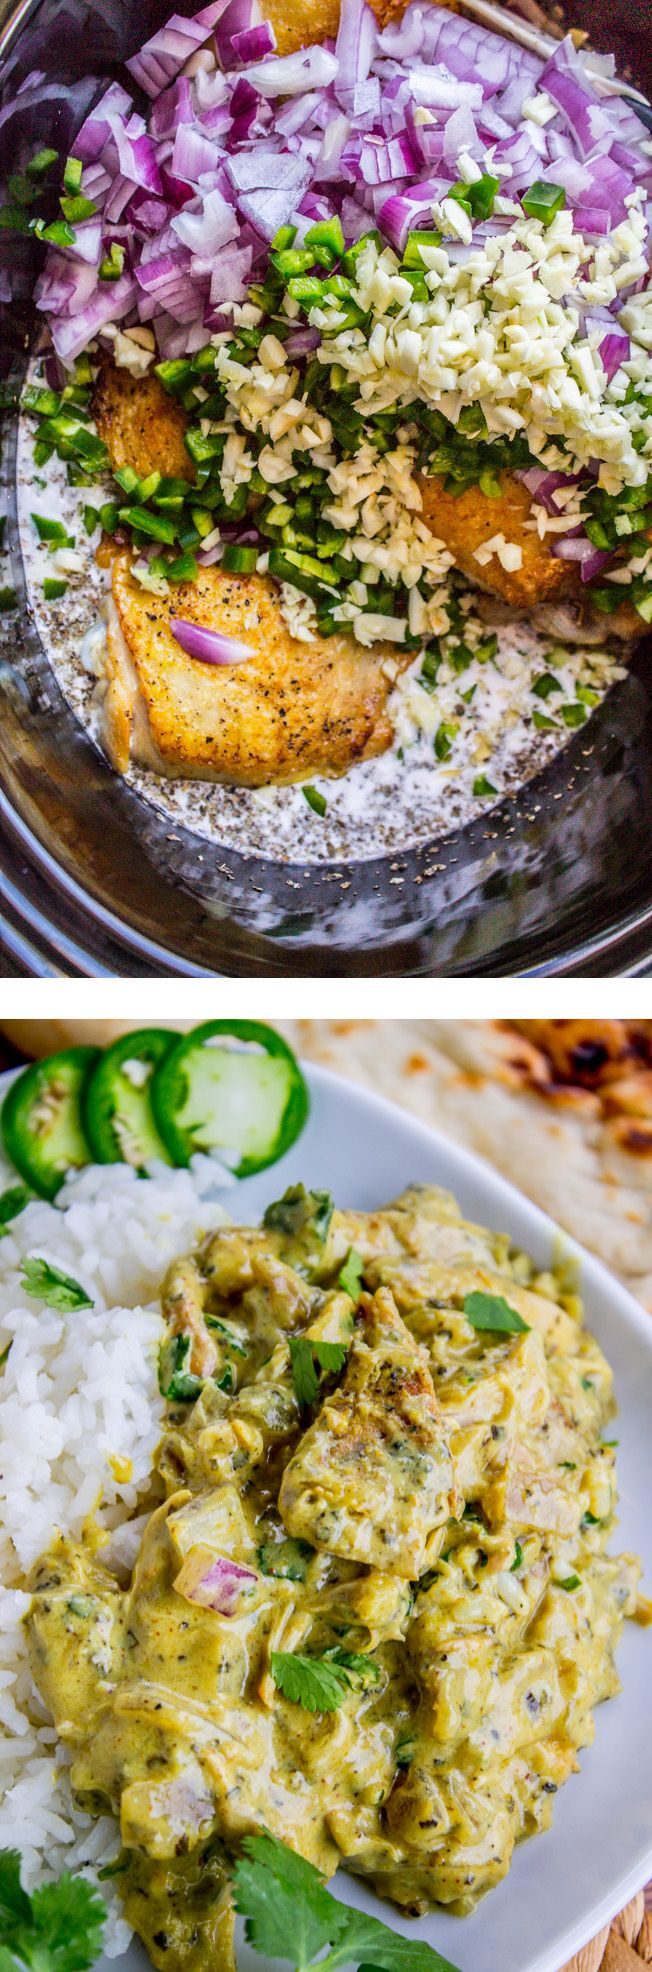 ~~Slow Cooker Basil Coconut Curry Chicken | Slow cook your way to the most flavorful, fall-off-the-bone carmelized chicken curry! The sauce has coconut milk, jalapeno, curry and chili powder to name a few ingredients. It's not overly spicy and has tons of flavor! | The Food Charlatan~~